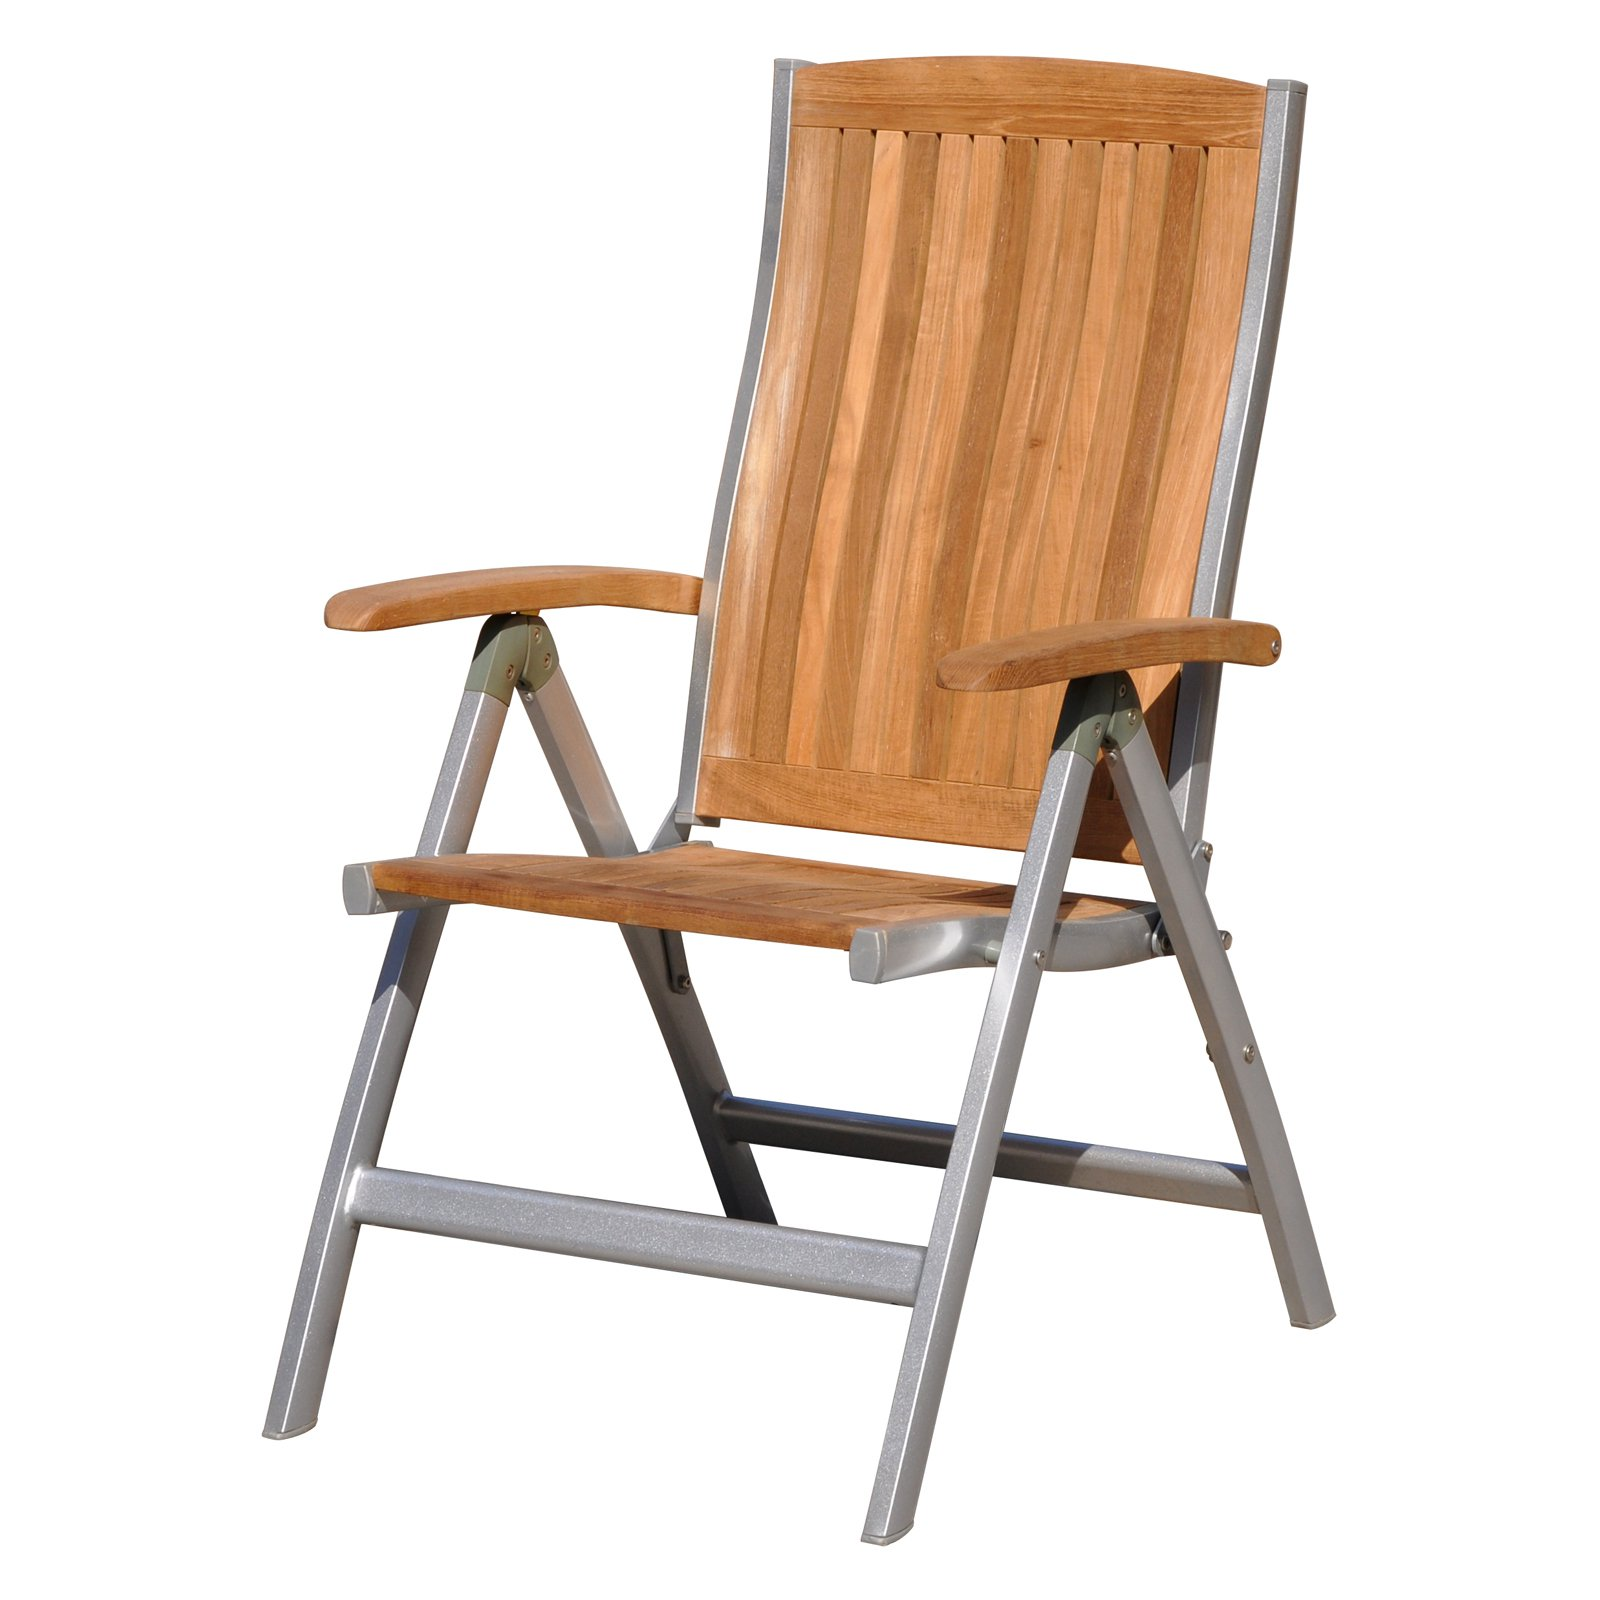 Courtyard Casual Natural Finish Burma Teak and Aluminum Outdoor Chair by Courtyard Casual